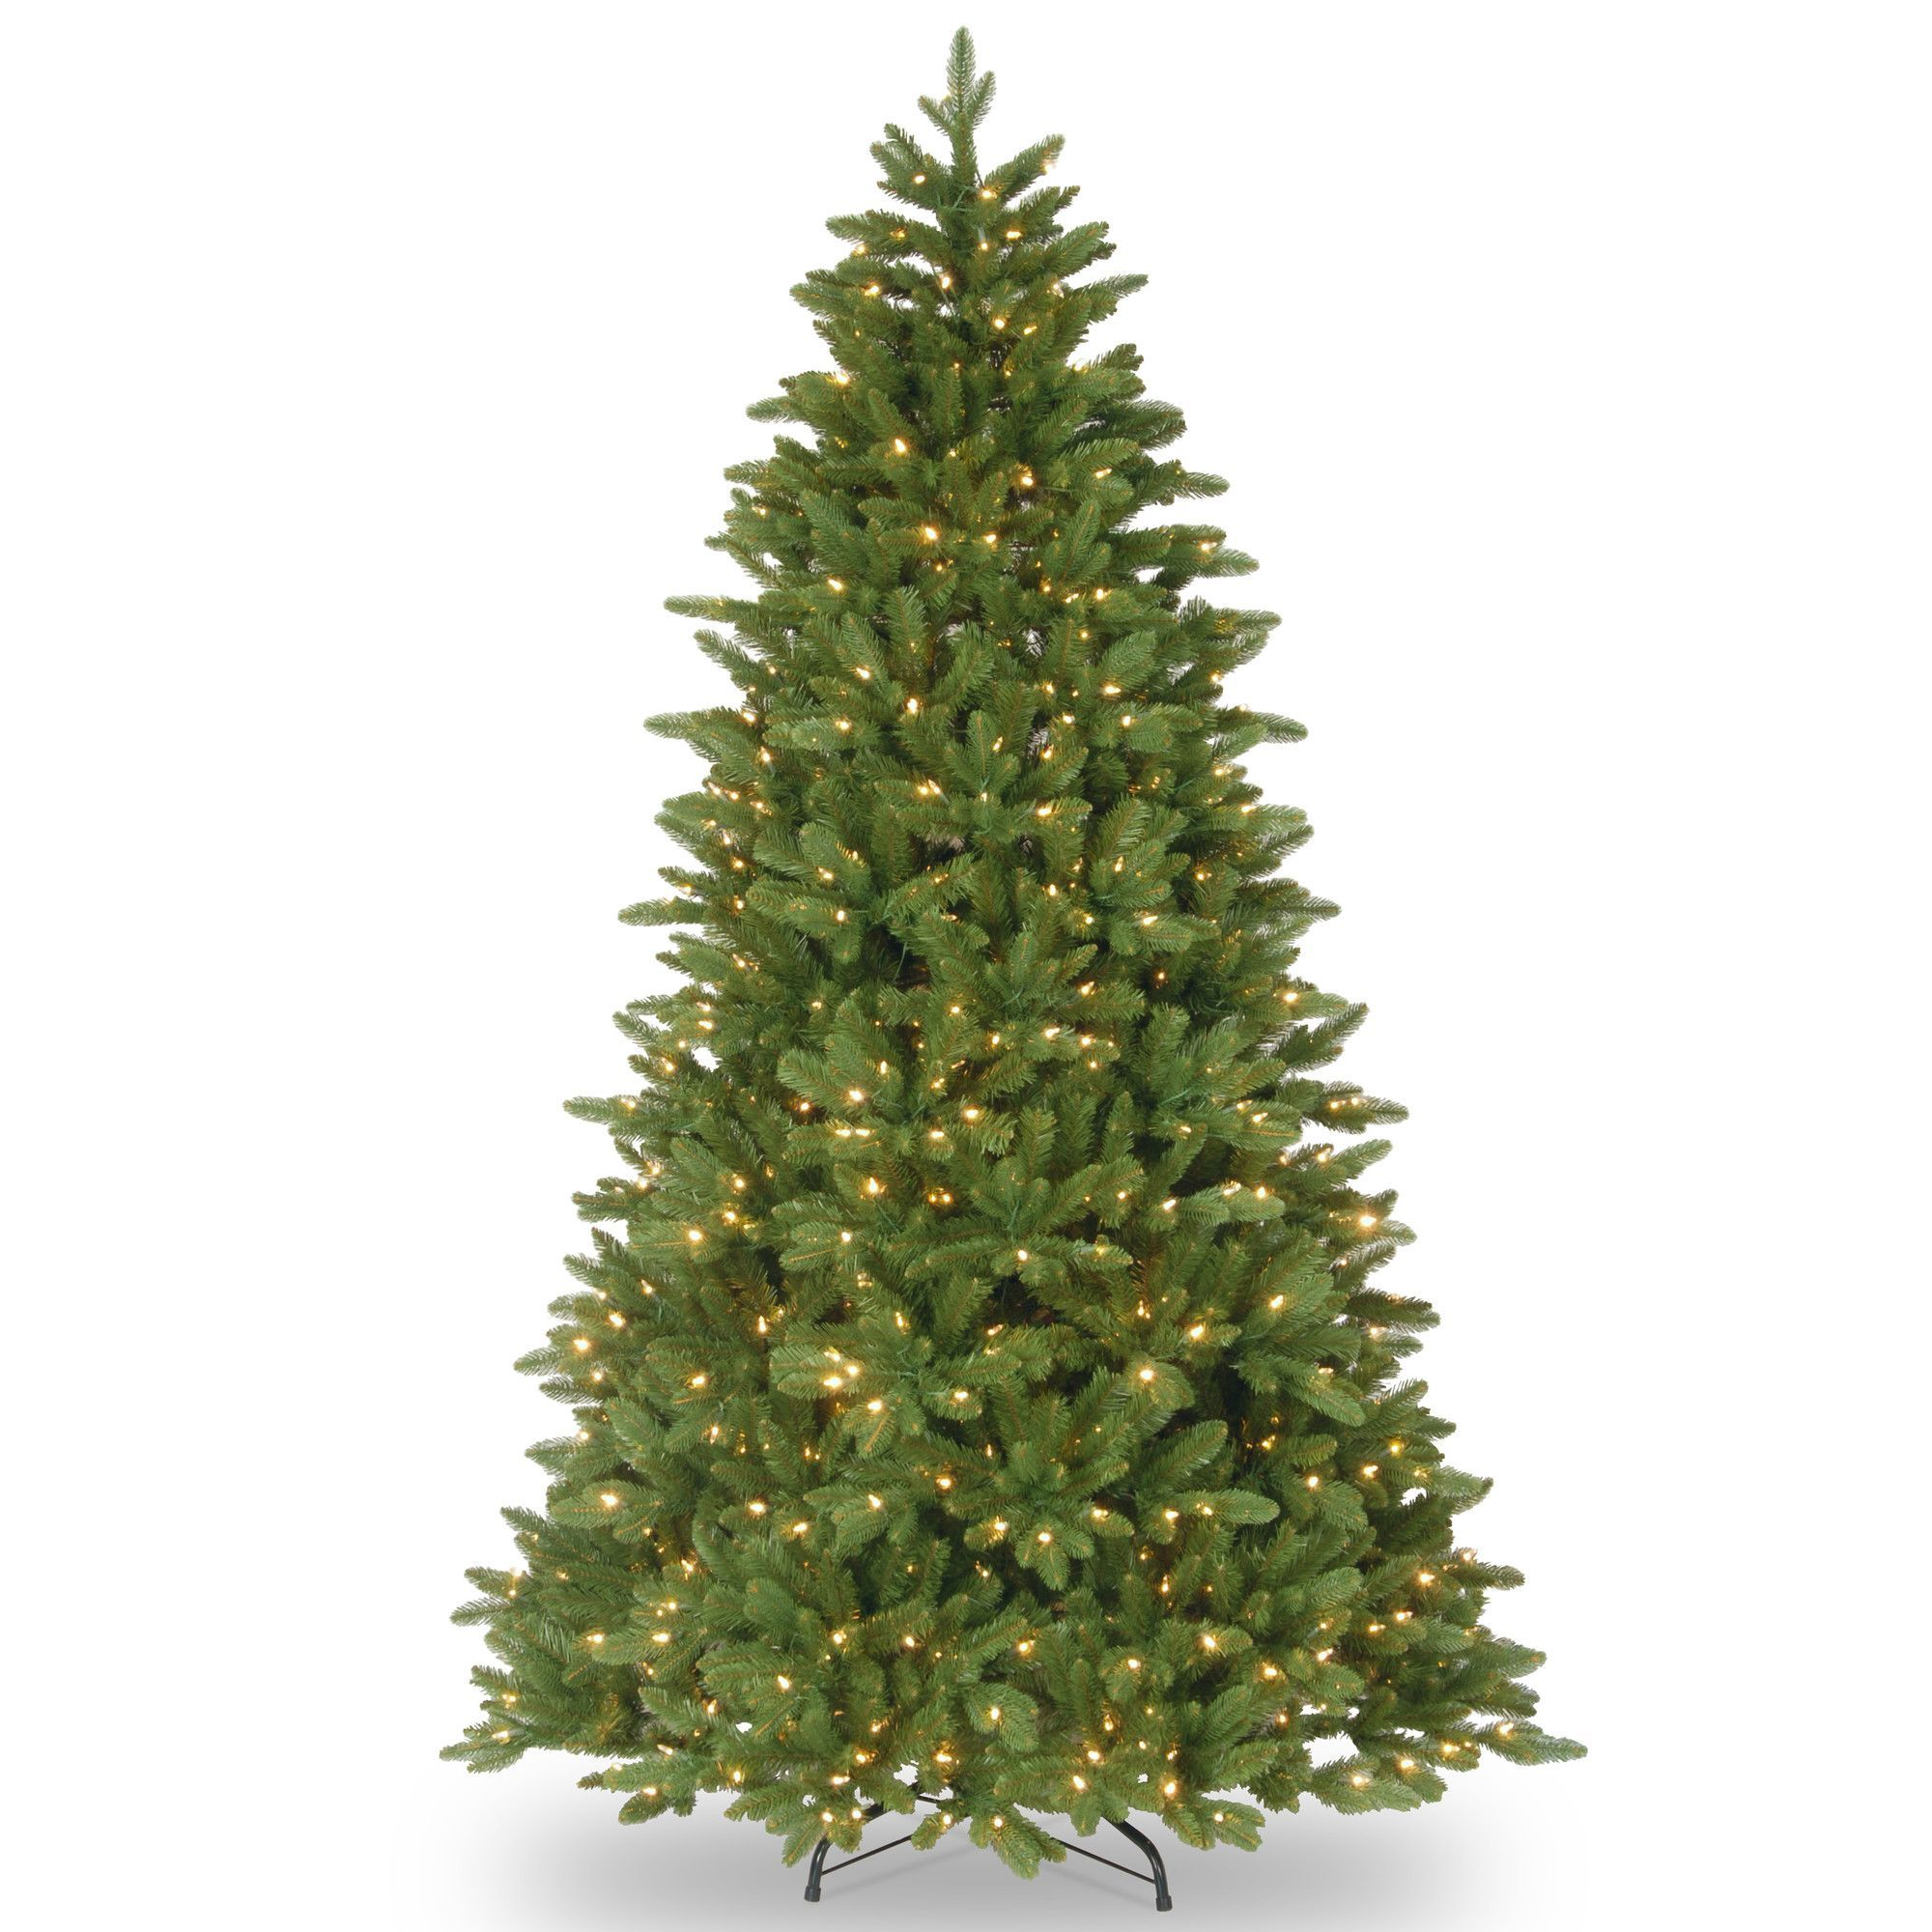 7 5 Green Ridgewood Spruce Artificial Christmas Tree With 750 Clear Lights And Stand